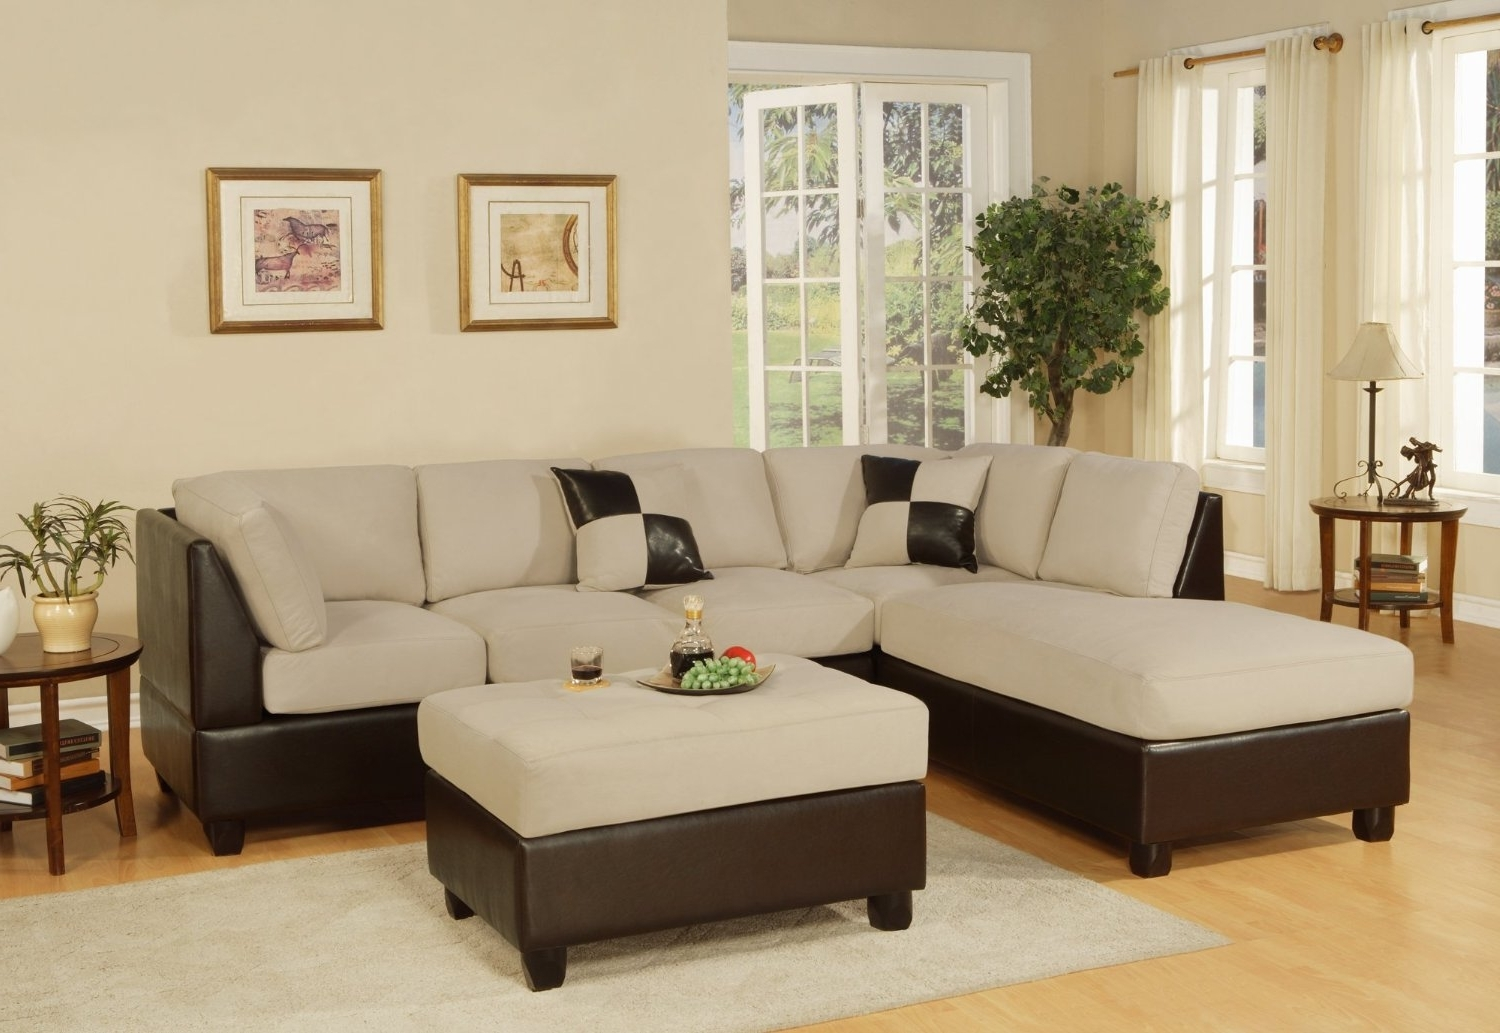 Furniture : Sectional Sofa 96X96 Sectional Couch Costco Sectional Throughout Fashionable 96X96 Sectional Sofas (View 11 of 15)